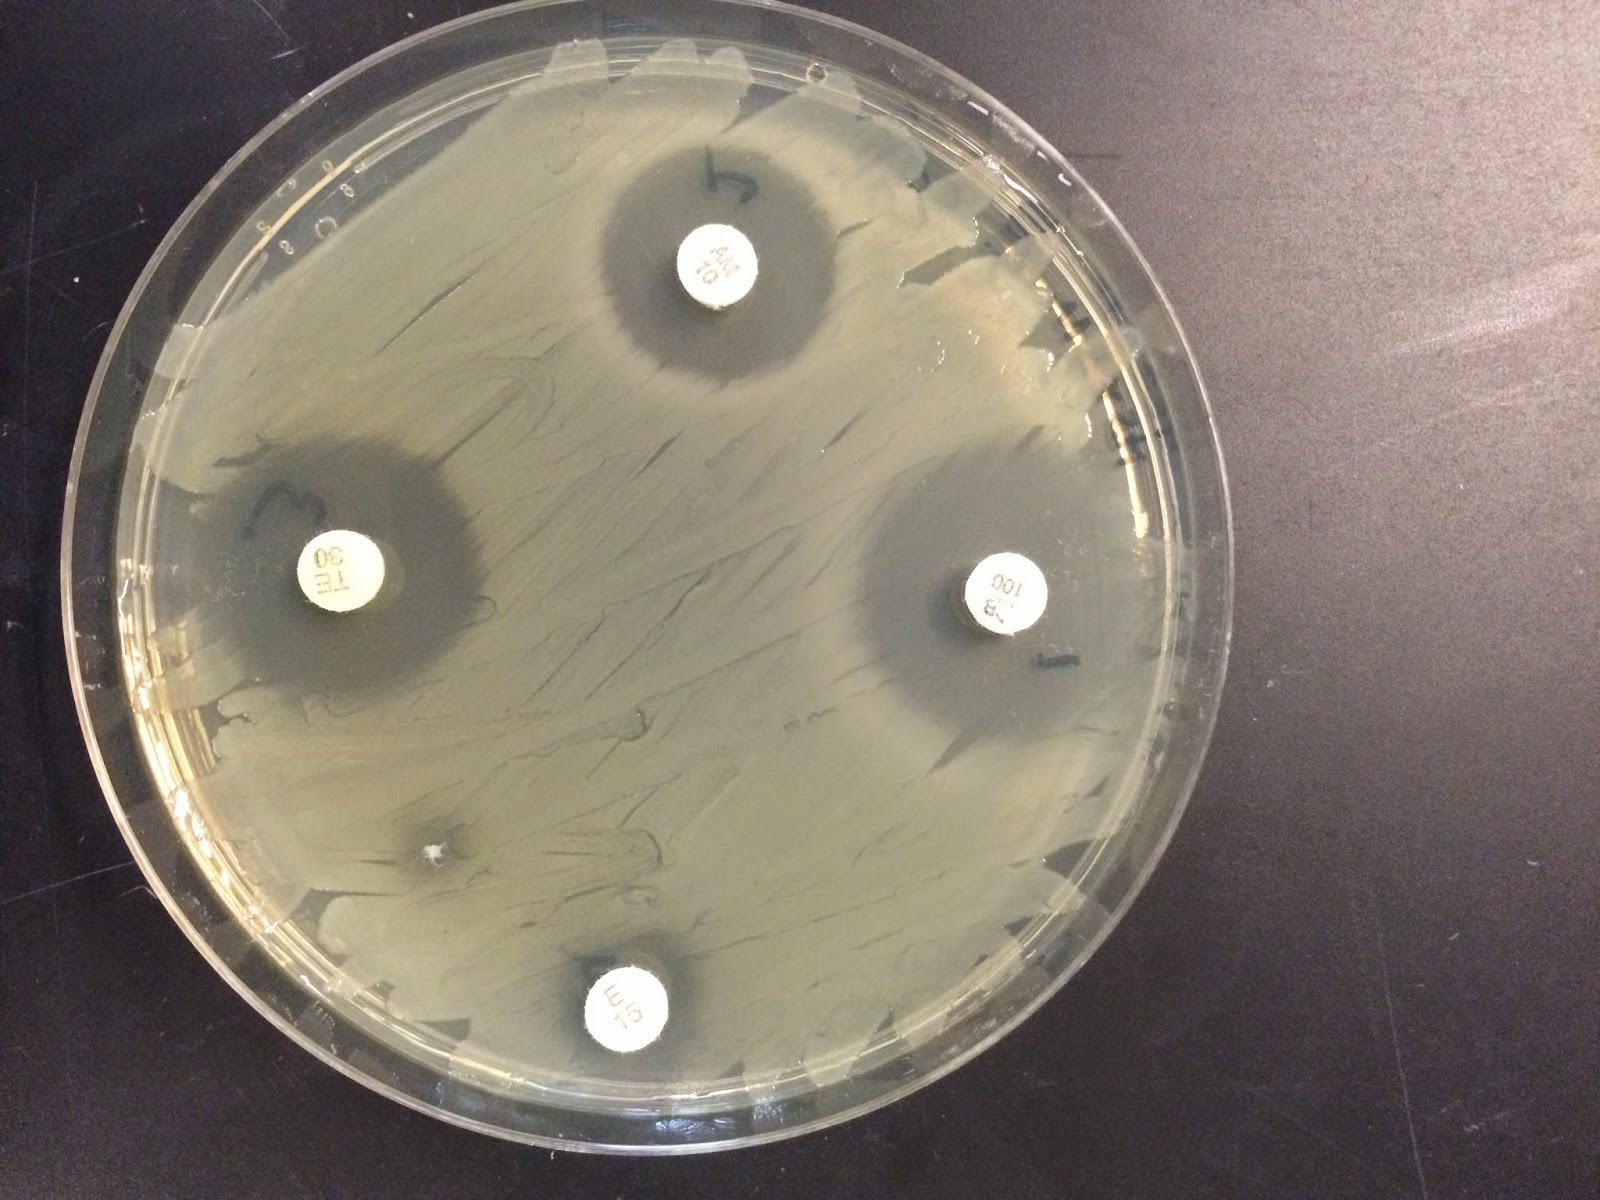 agar dating Intended use hardy diagnostics tryptic soy agar is recommended for use as a general growth medium for the isolation and cultivation of microorganisms.